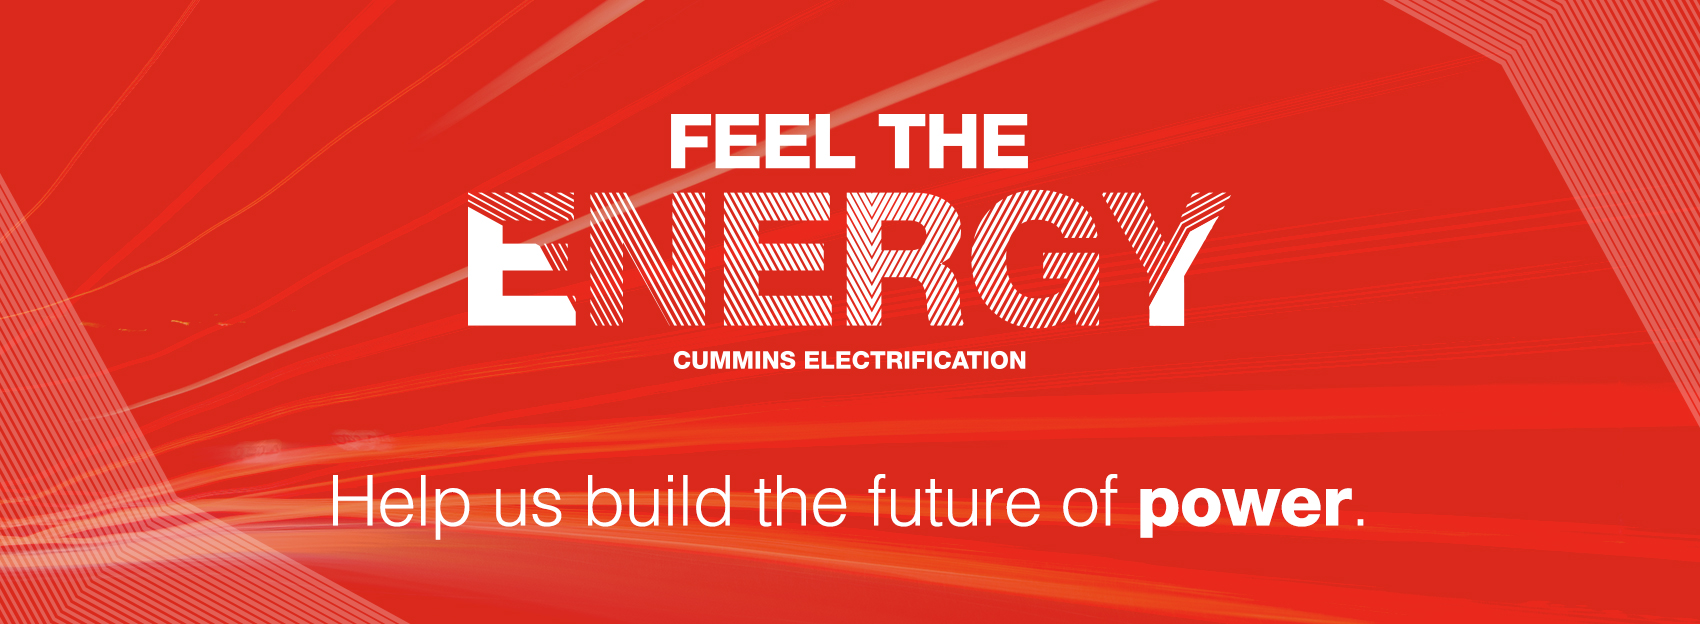 Feel the energy, Cummins electrification. Help us build the future of power